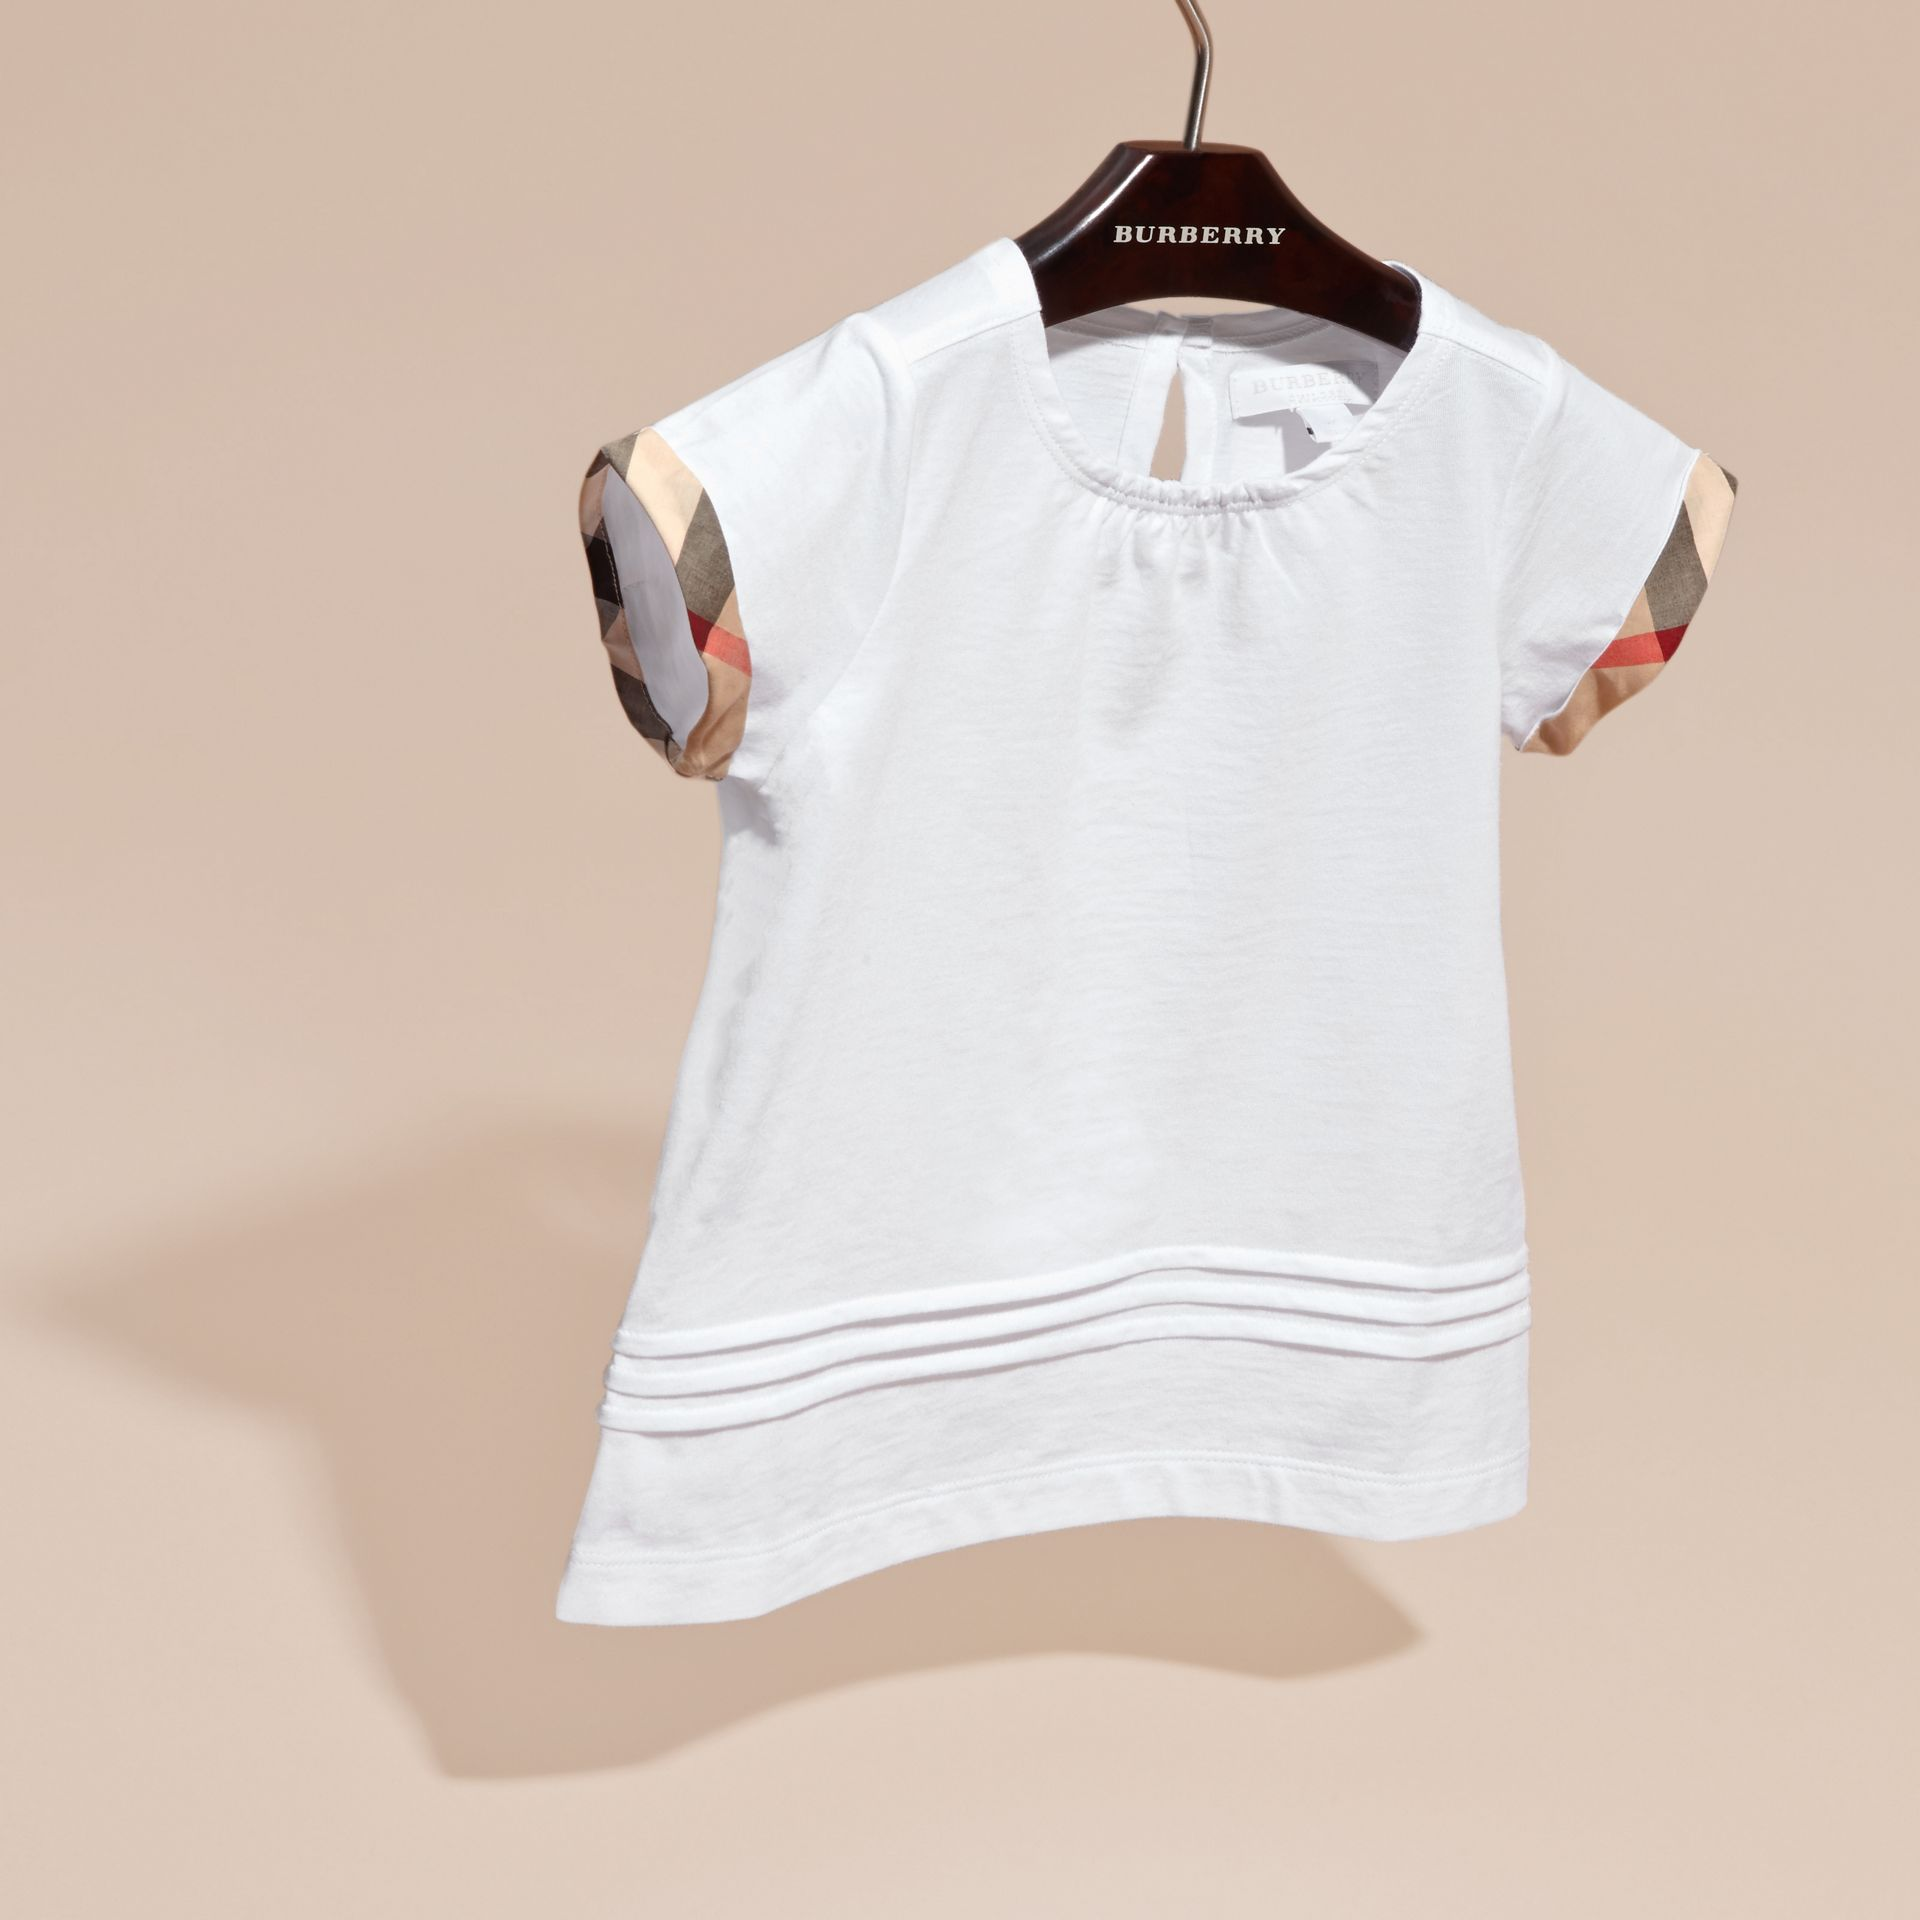 Pleat and Check Detail Cotton T-shirt White - gallery image 3